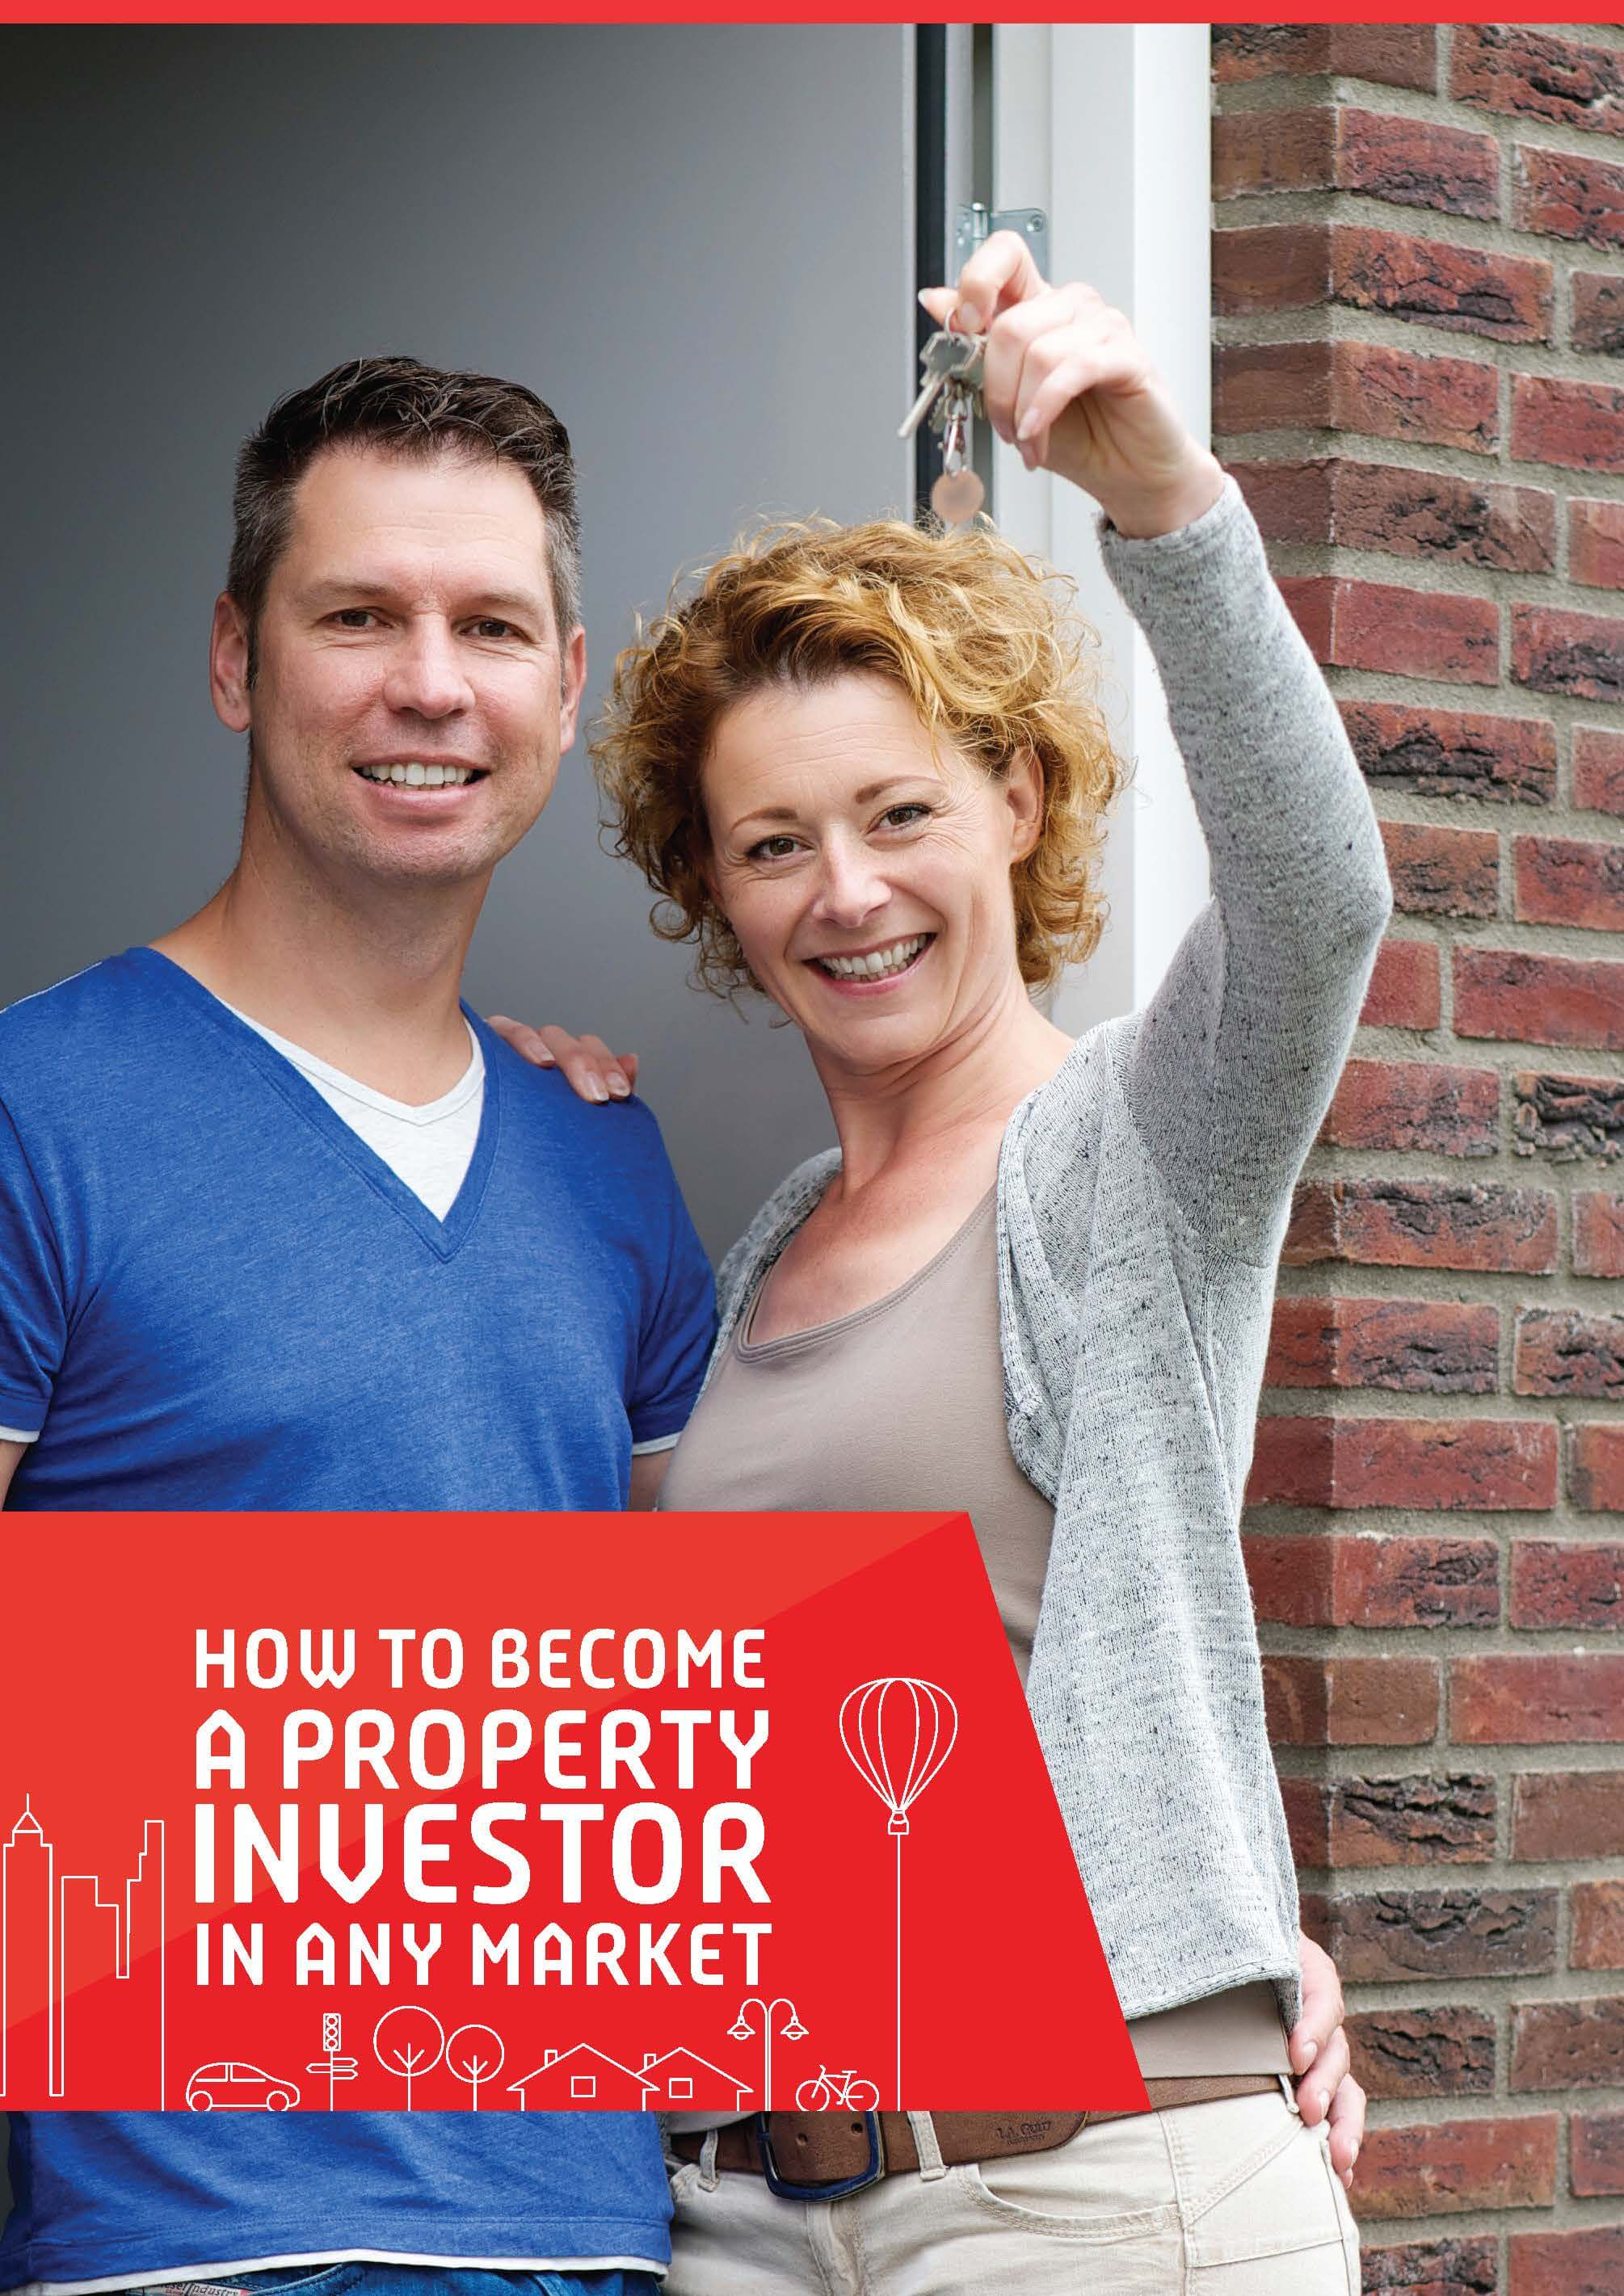 How to become a property investor in any market